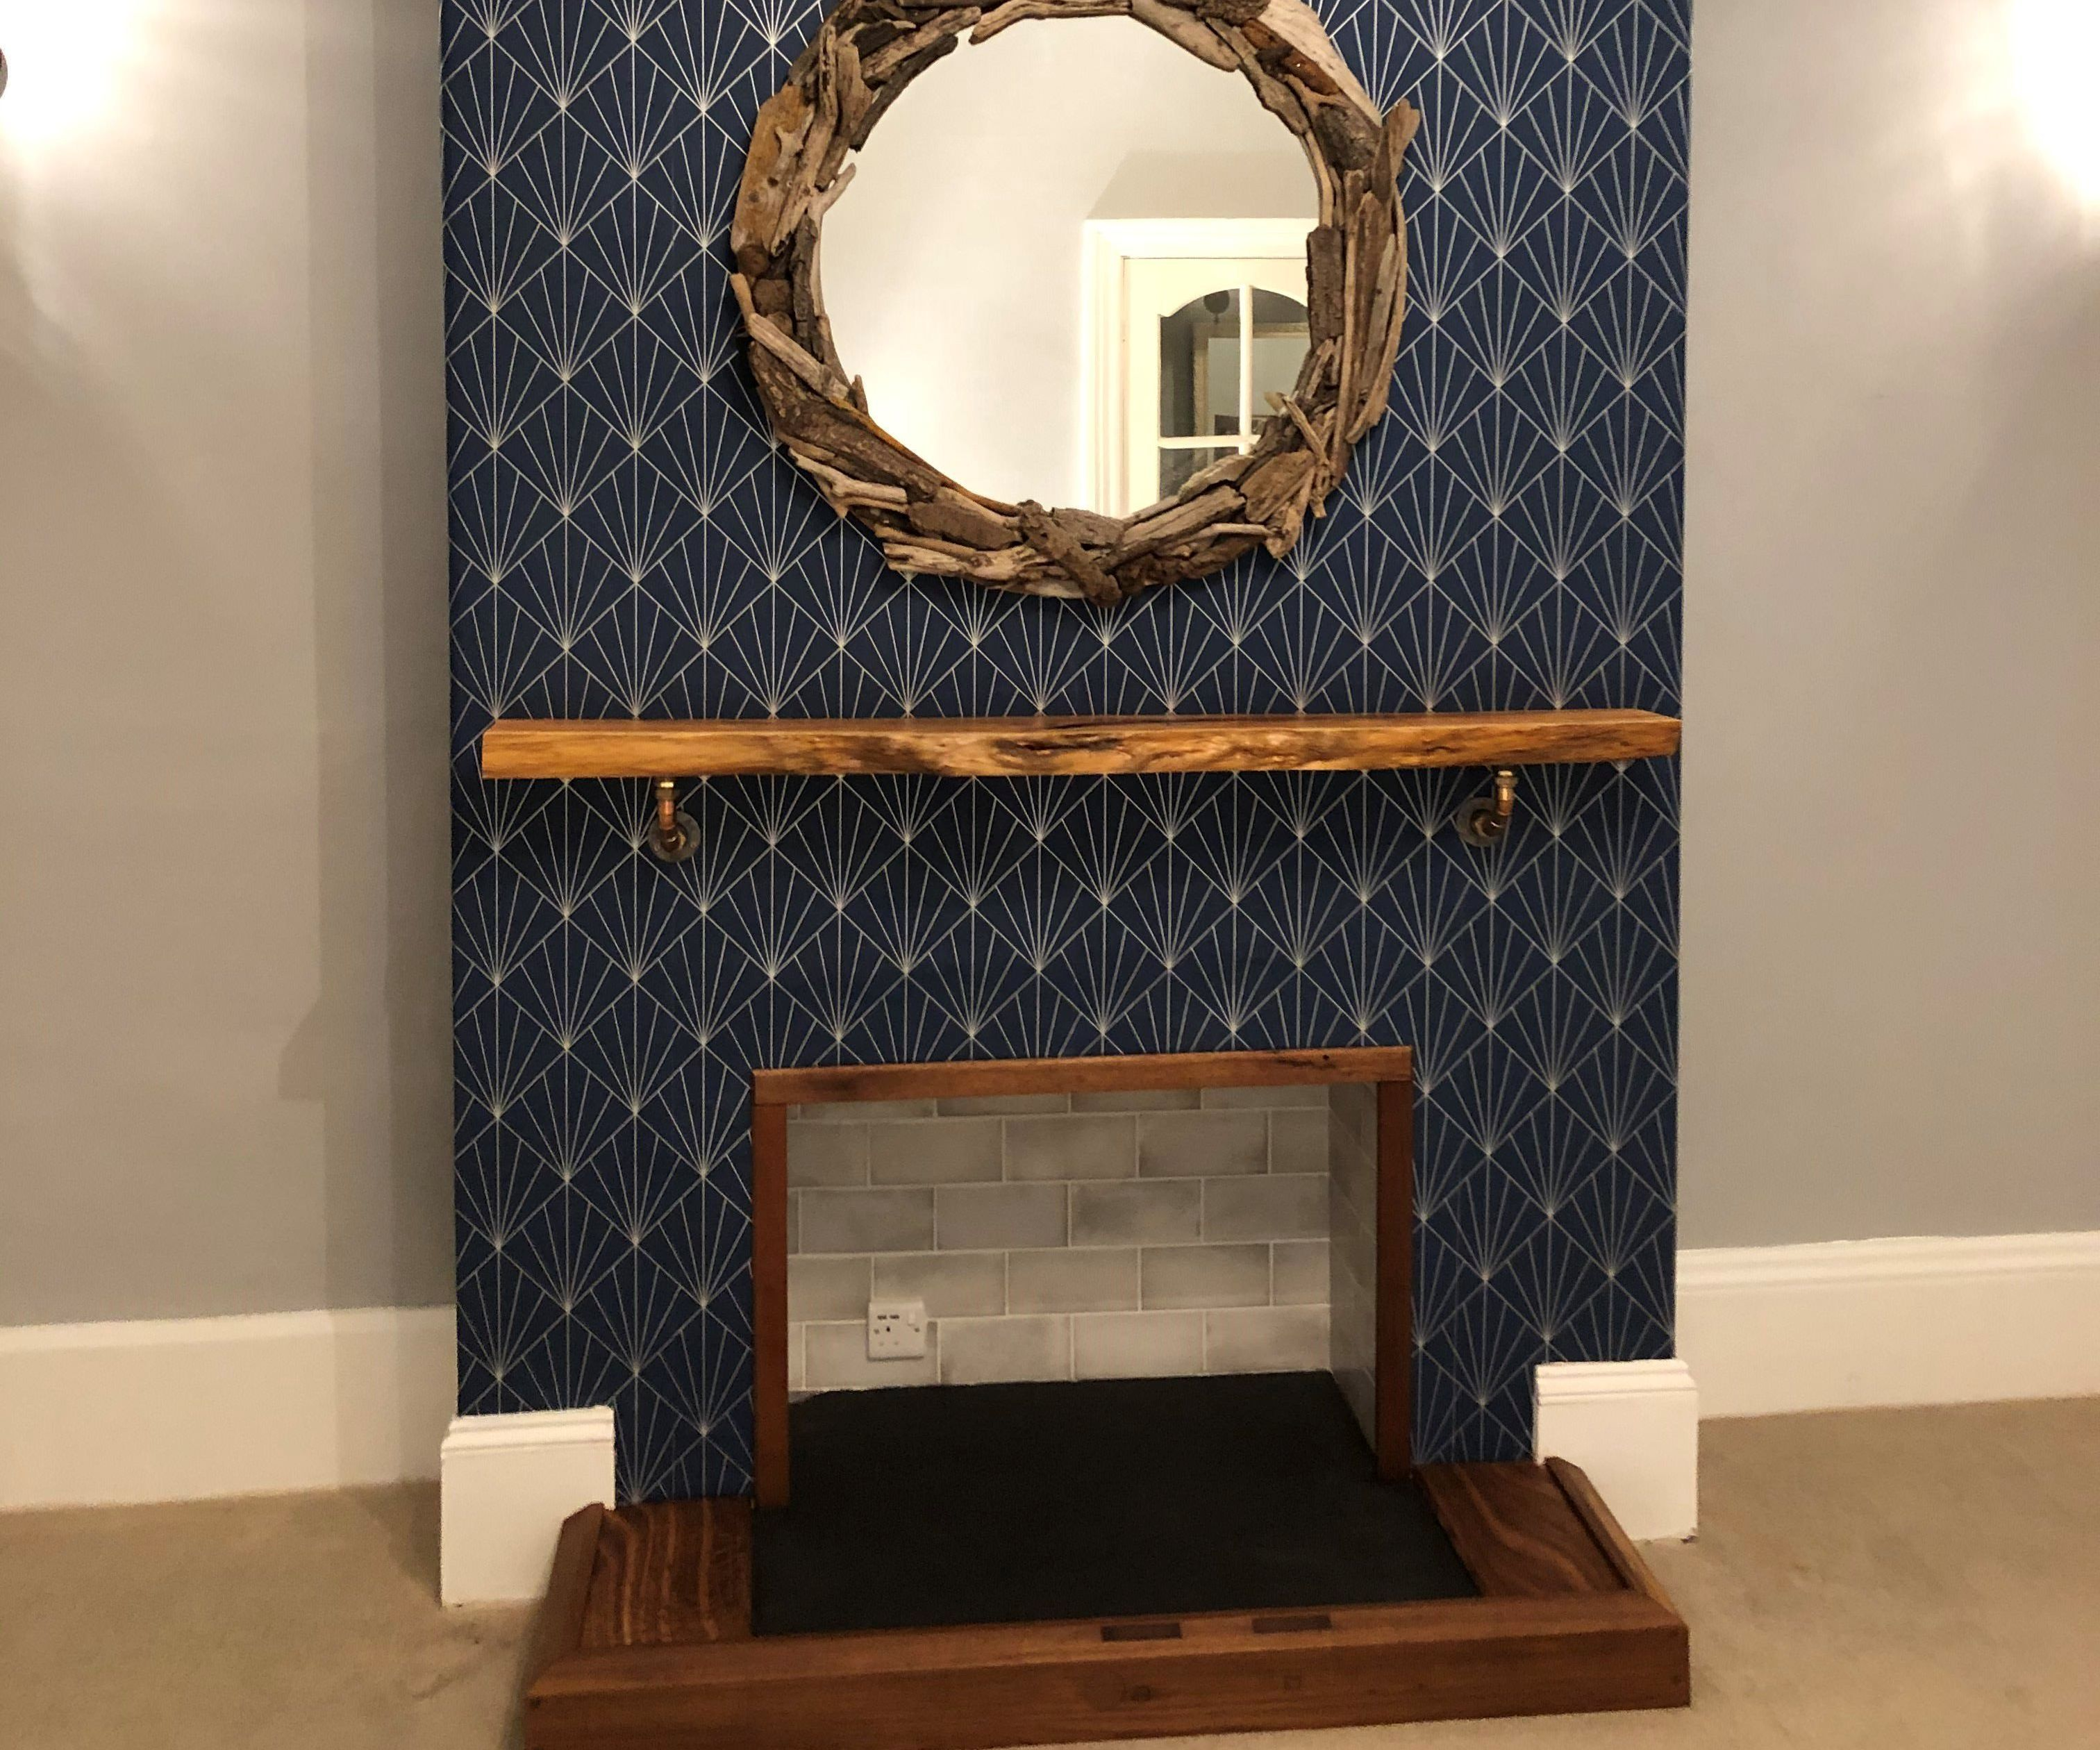 Fireplace Remove & Rebuild